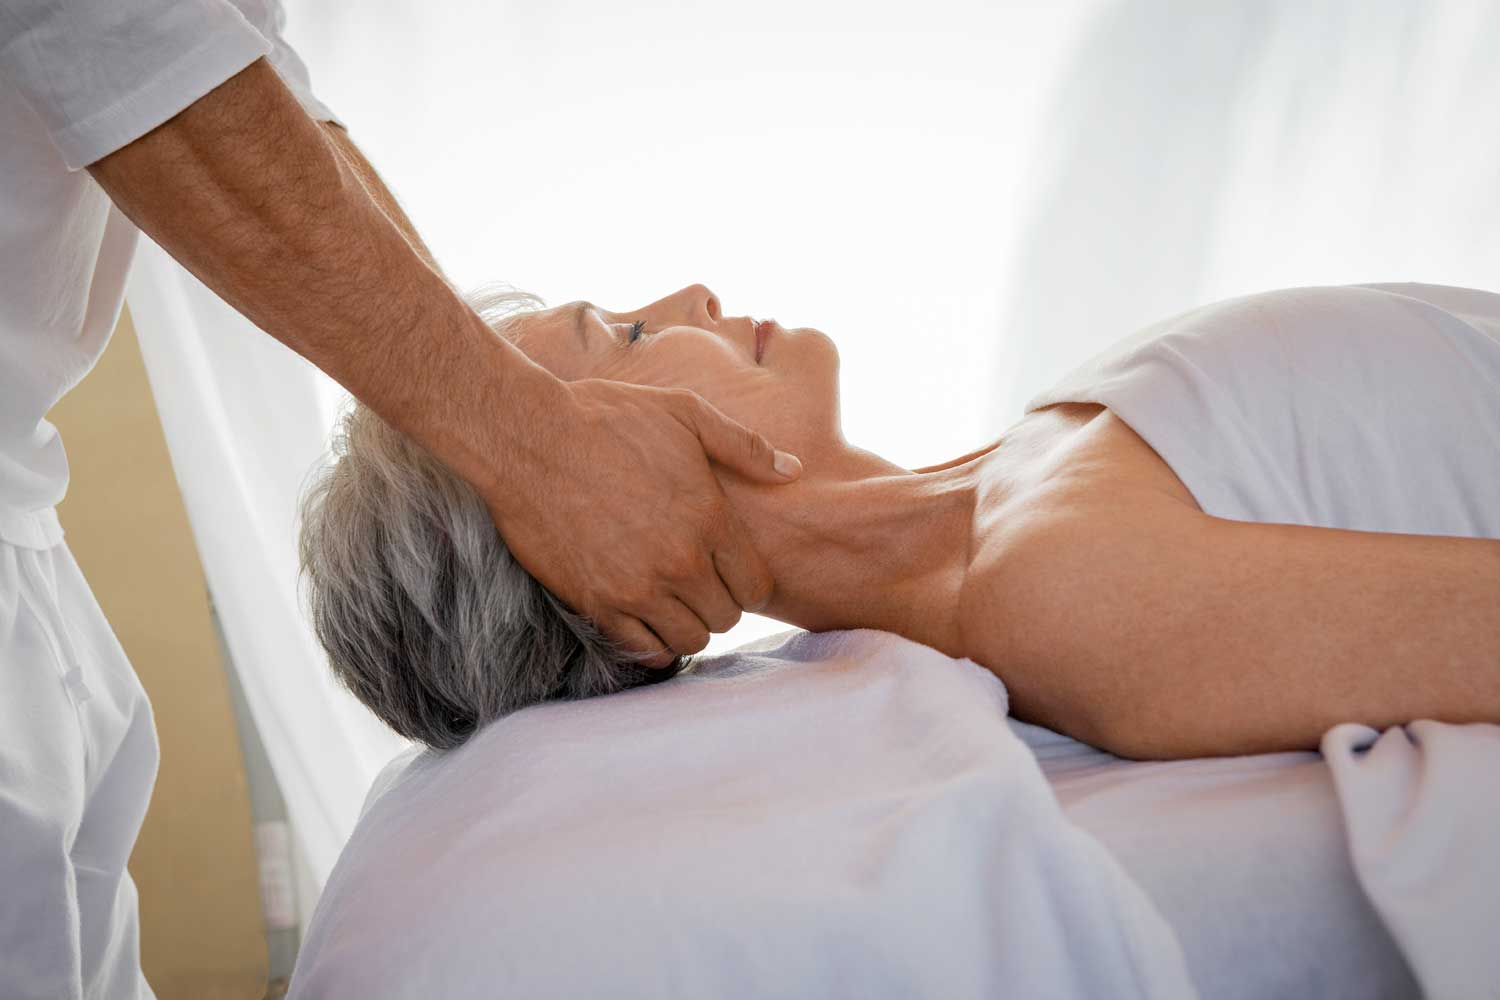 Geriatric massage is being performed on a mature client in a massage therapy setting